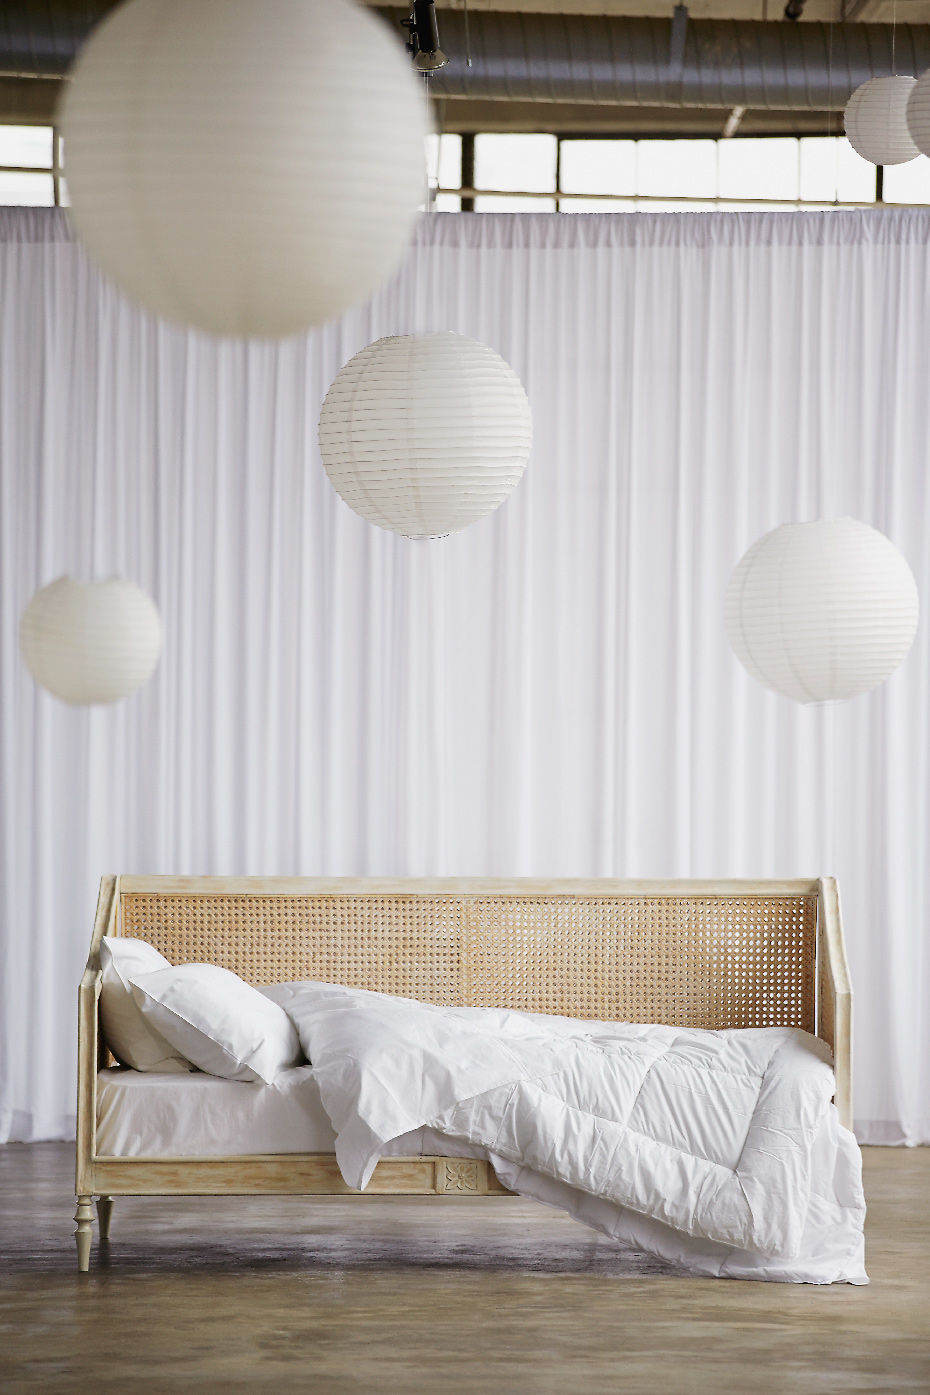 Stacey Van Berkel Photography I Rattan daybed with dreamy white duvet and pillows I Palu Furniture